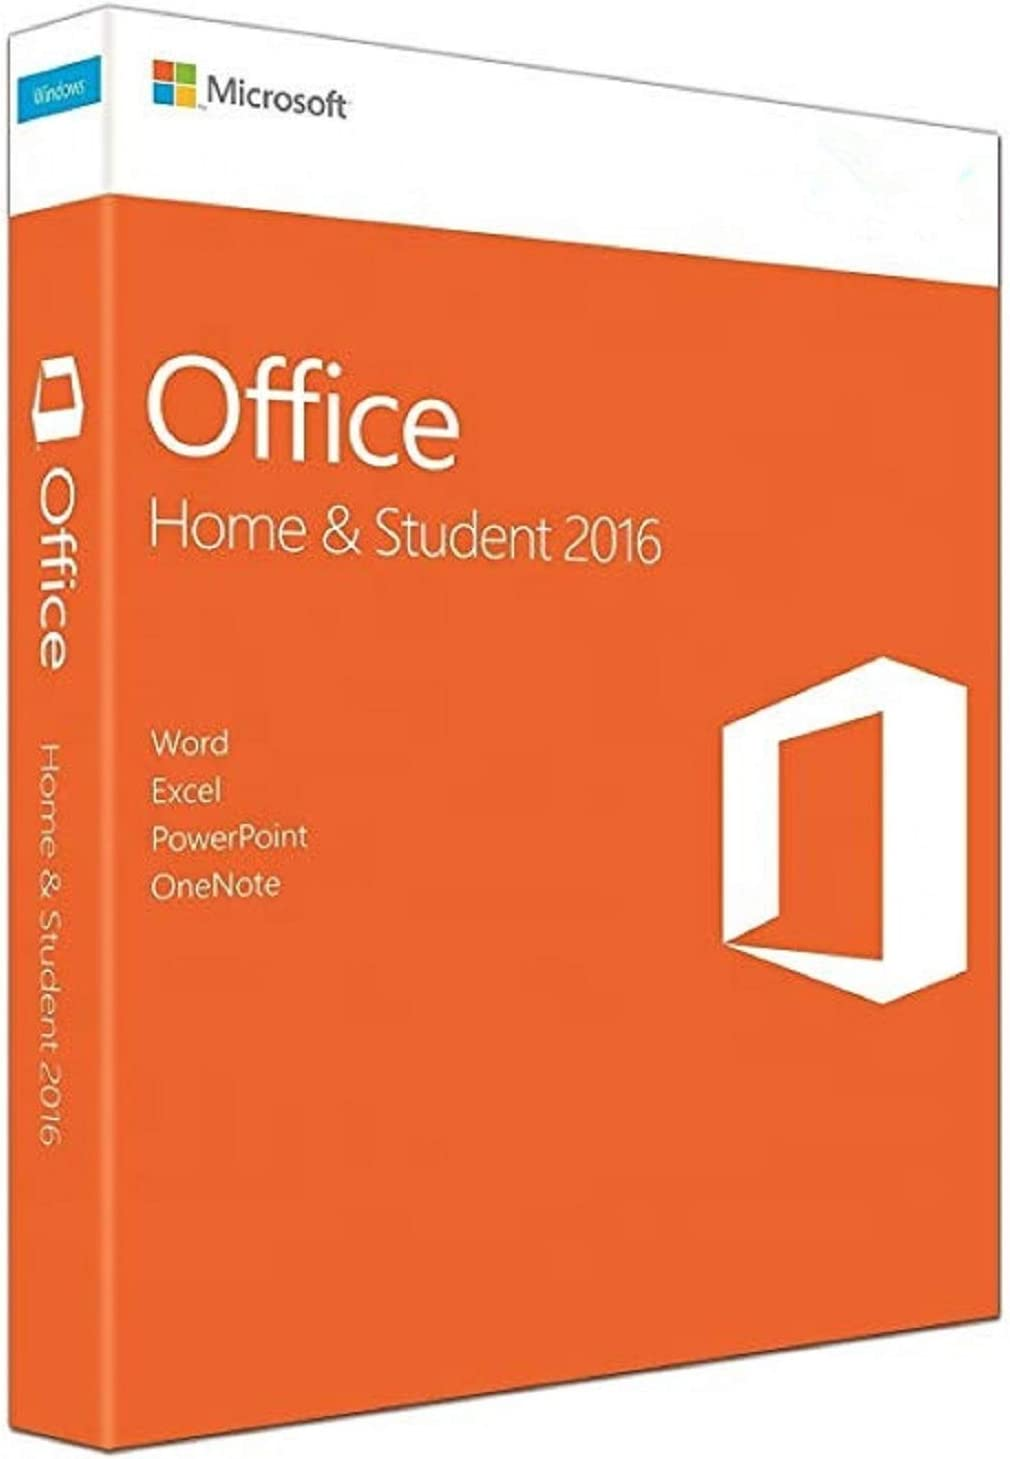 Office 2016 Home and Student - English - New - 1 PC - Box - KeyCard - Word Excel PowerPoint OneNote - 2016 for Win